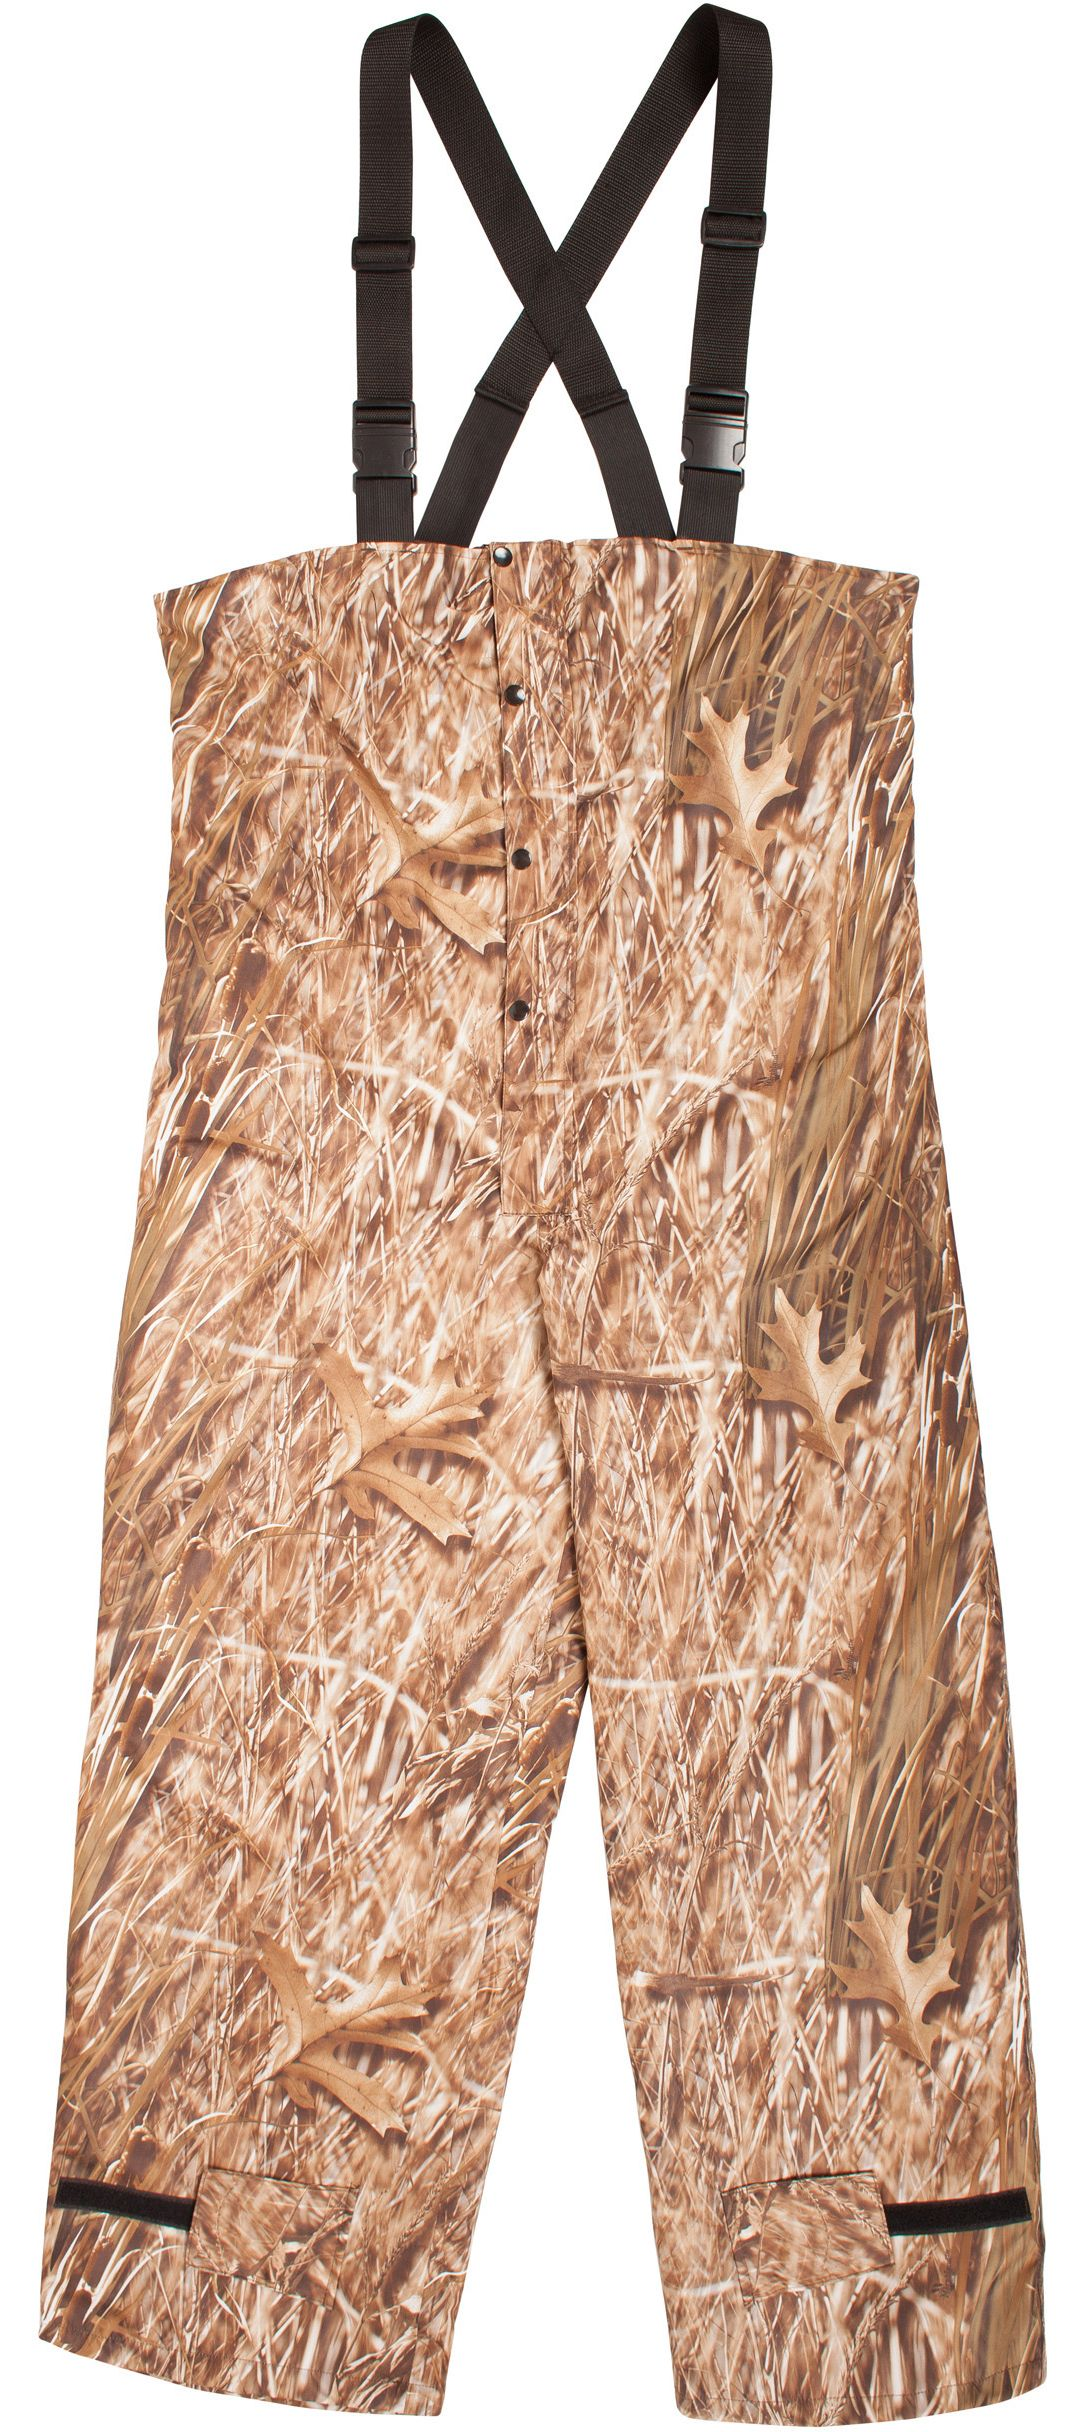 4b9b8b5403993 Huntworth Men's Microfiber Waterproof Hunting Bibs | Field & Stream